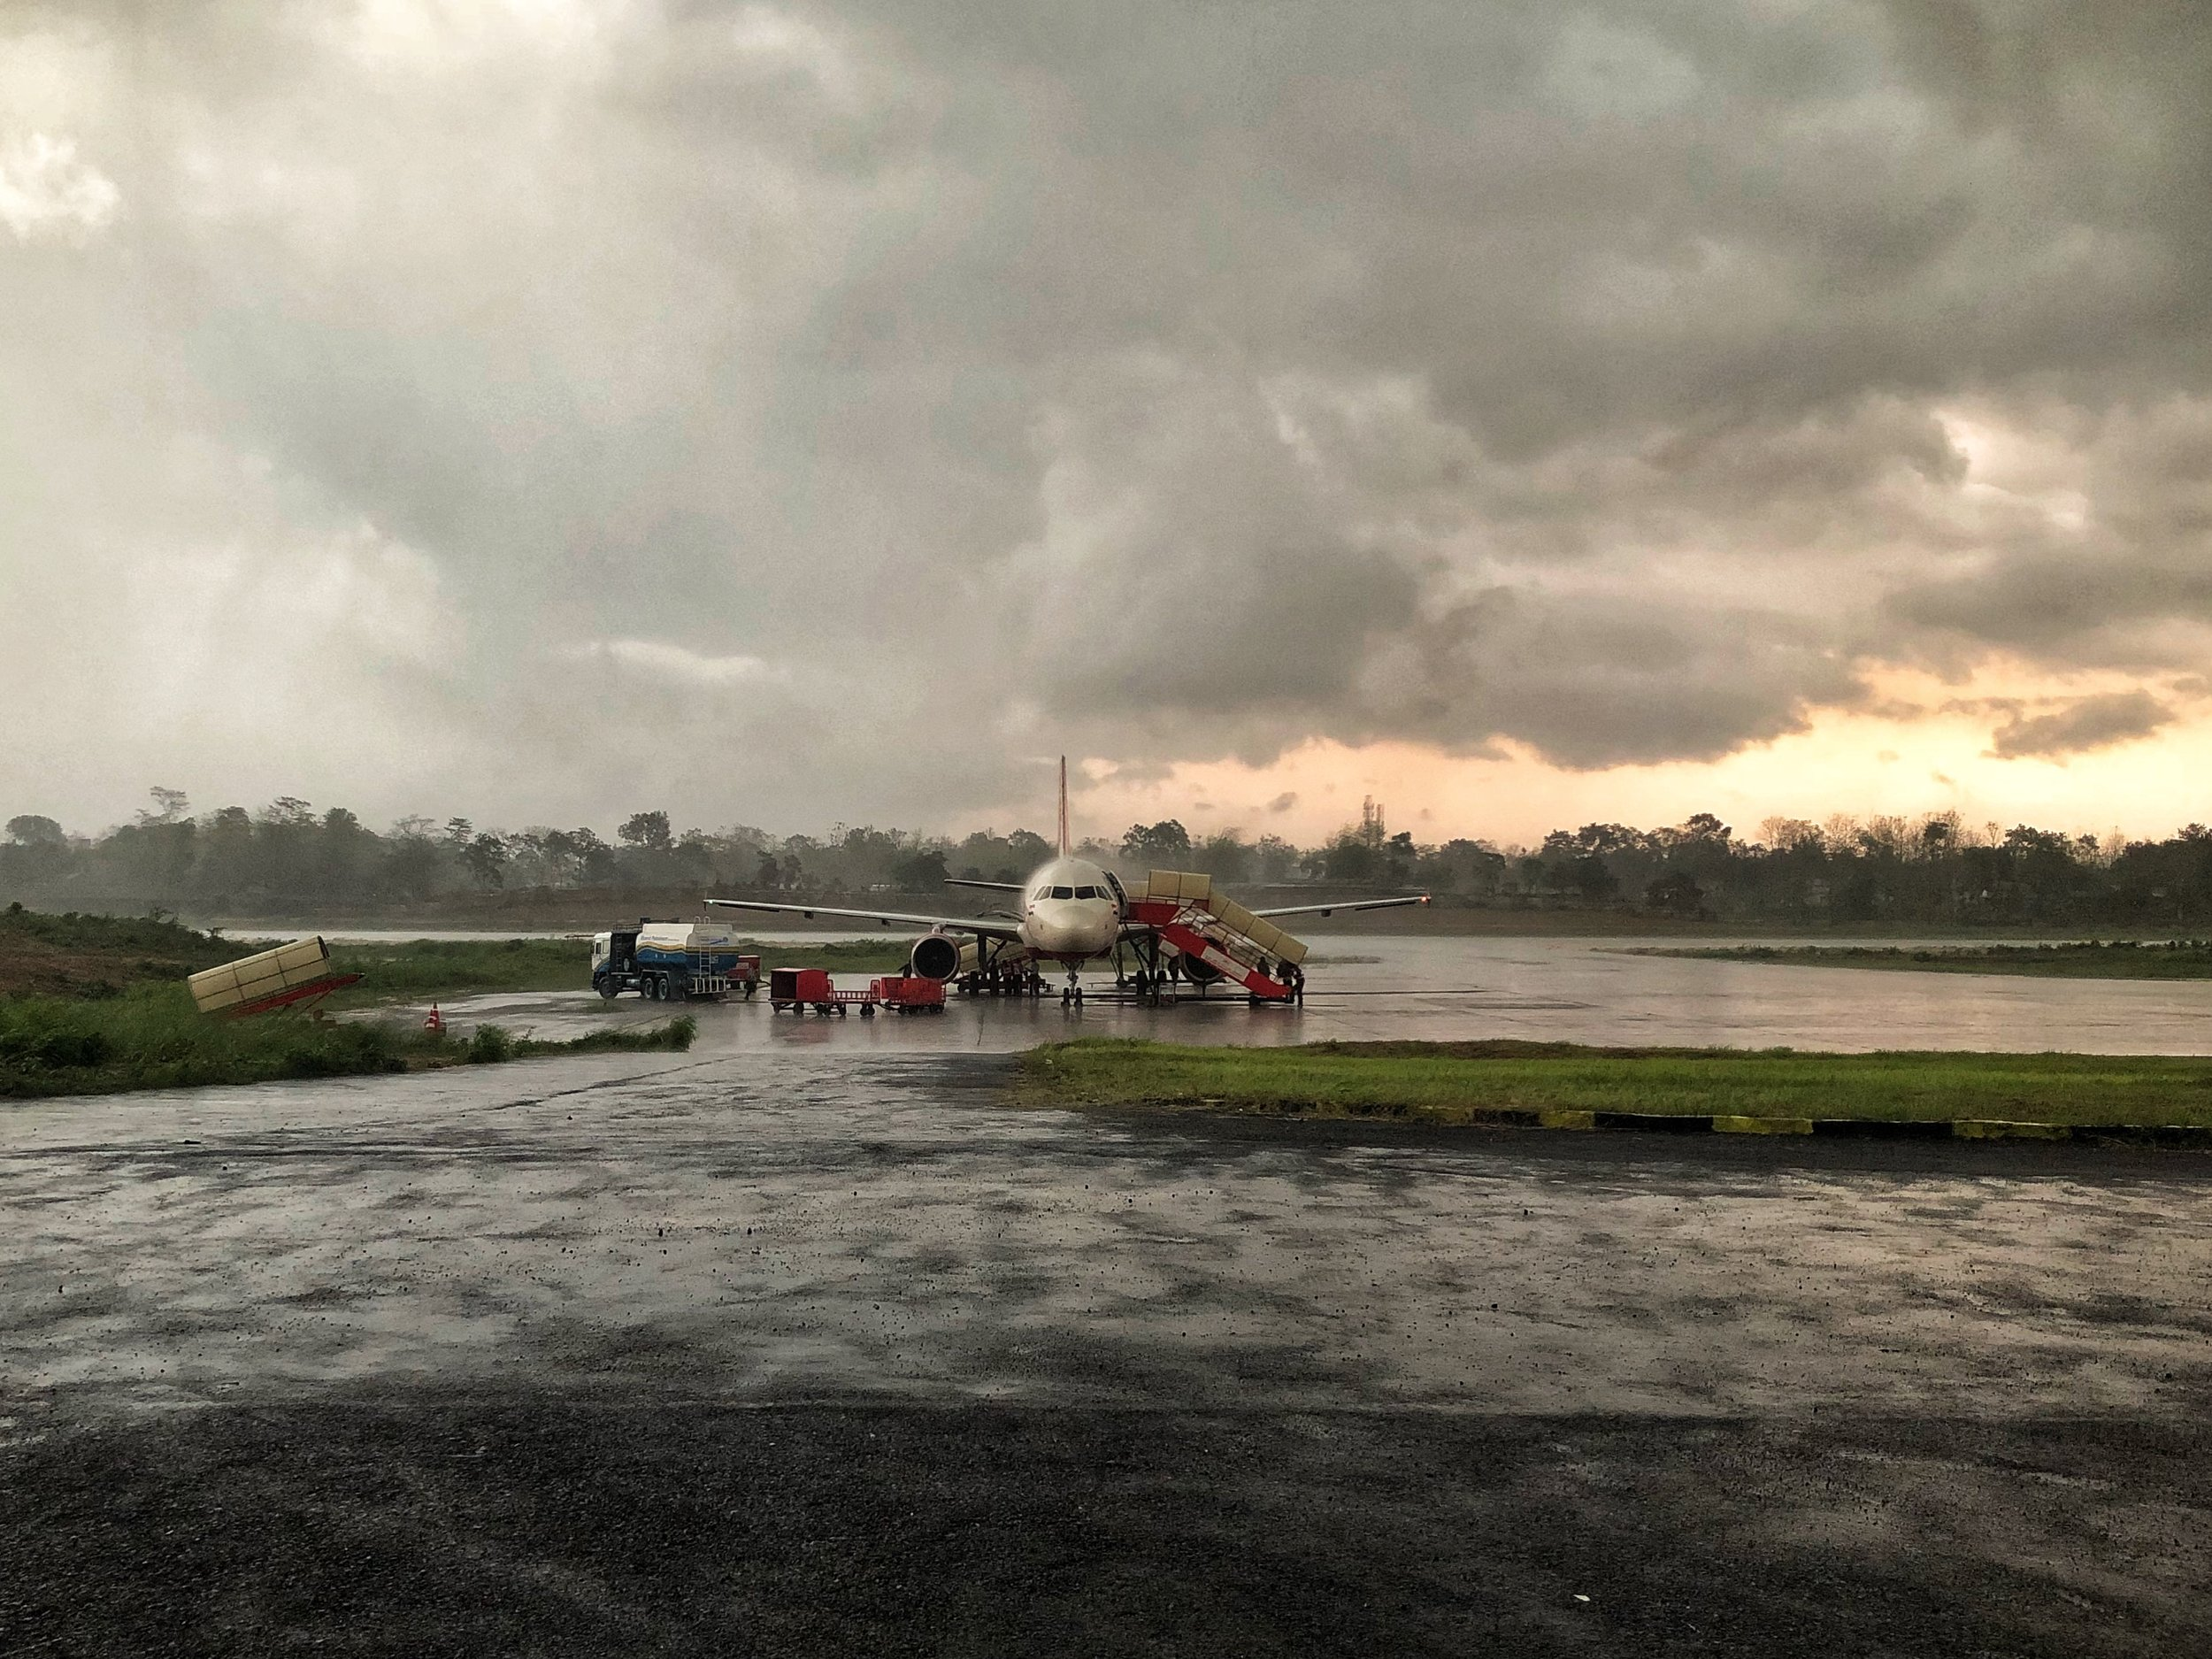 Storms delayed the flight from Dimapur